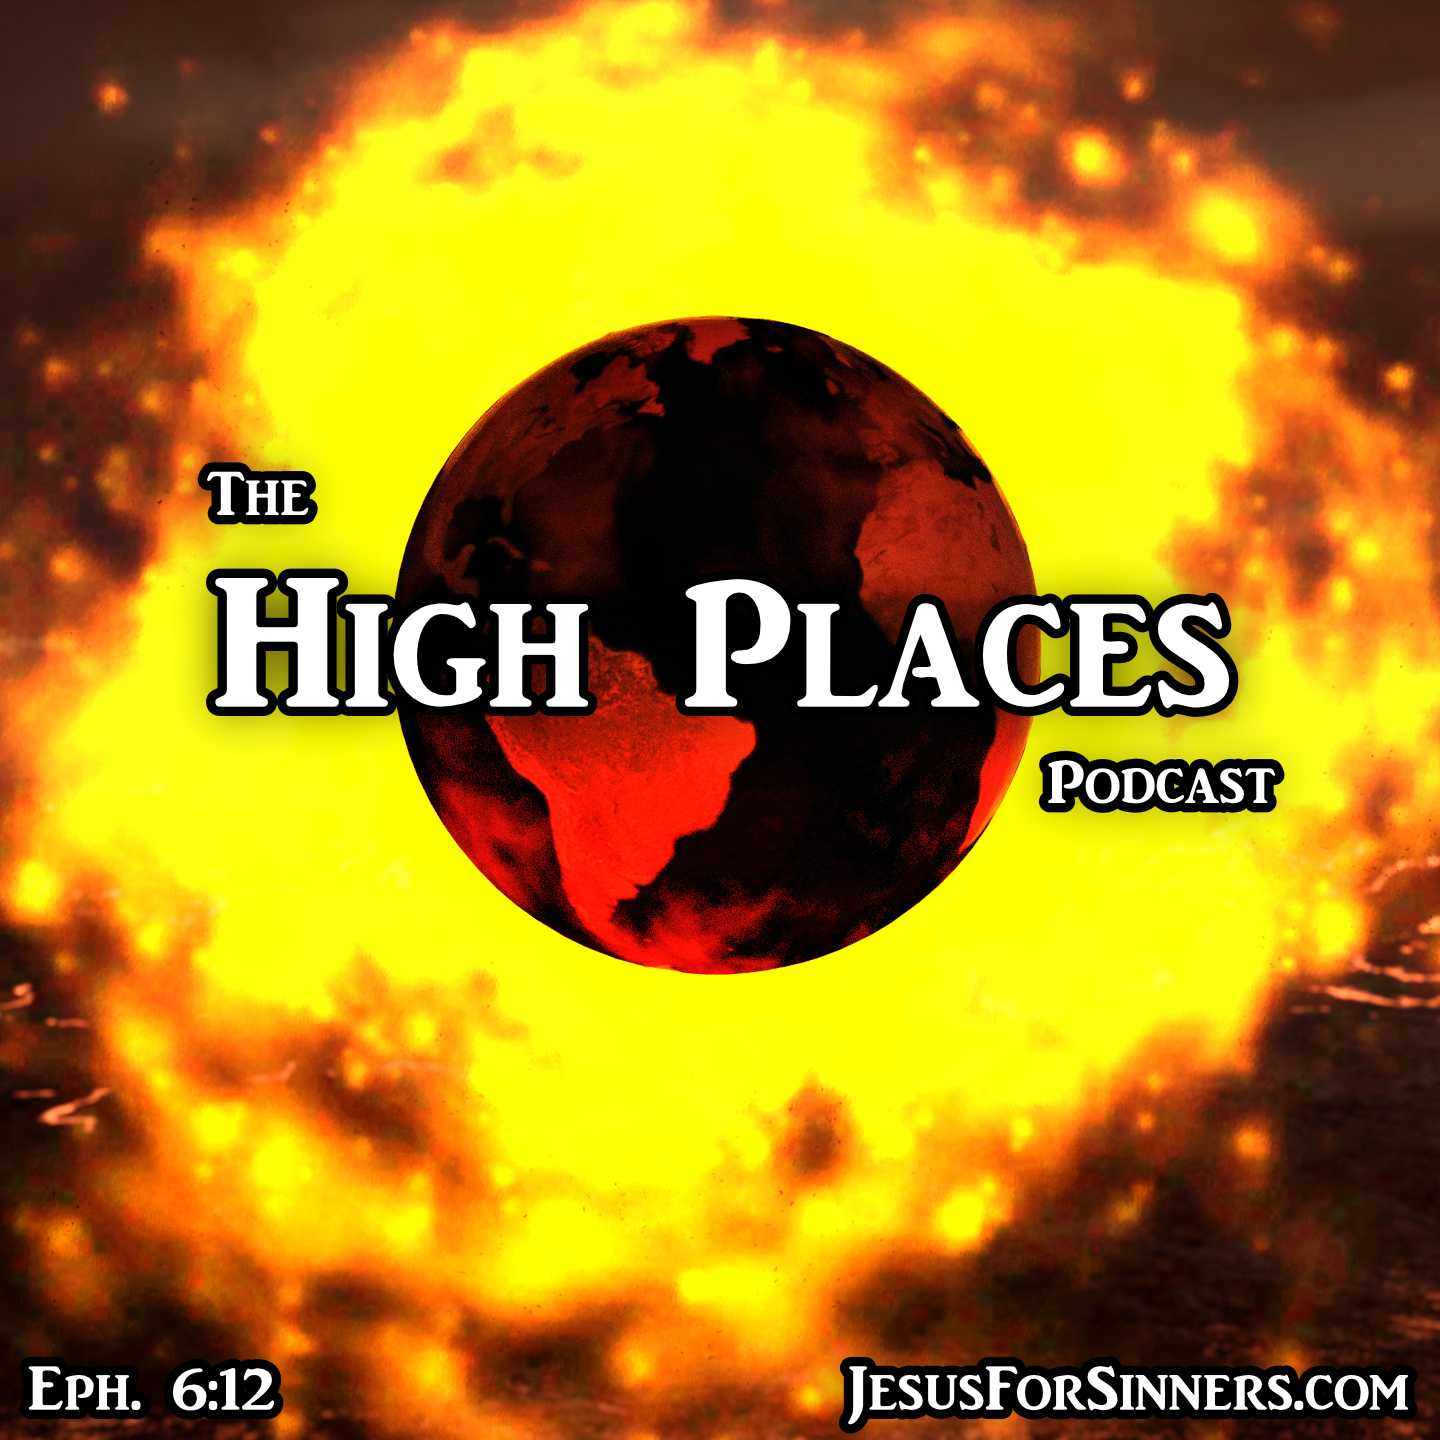 The High Places Podcast